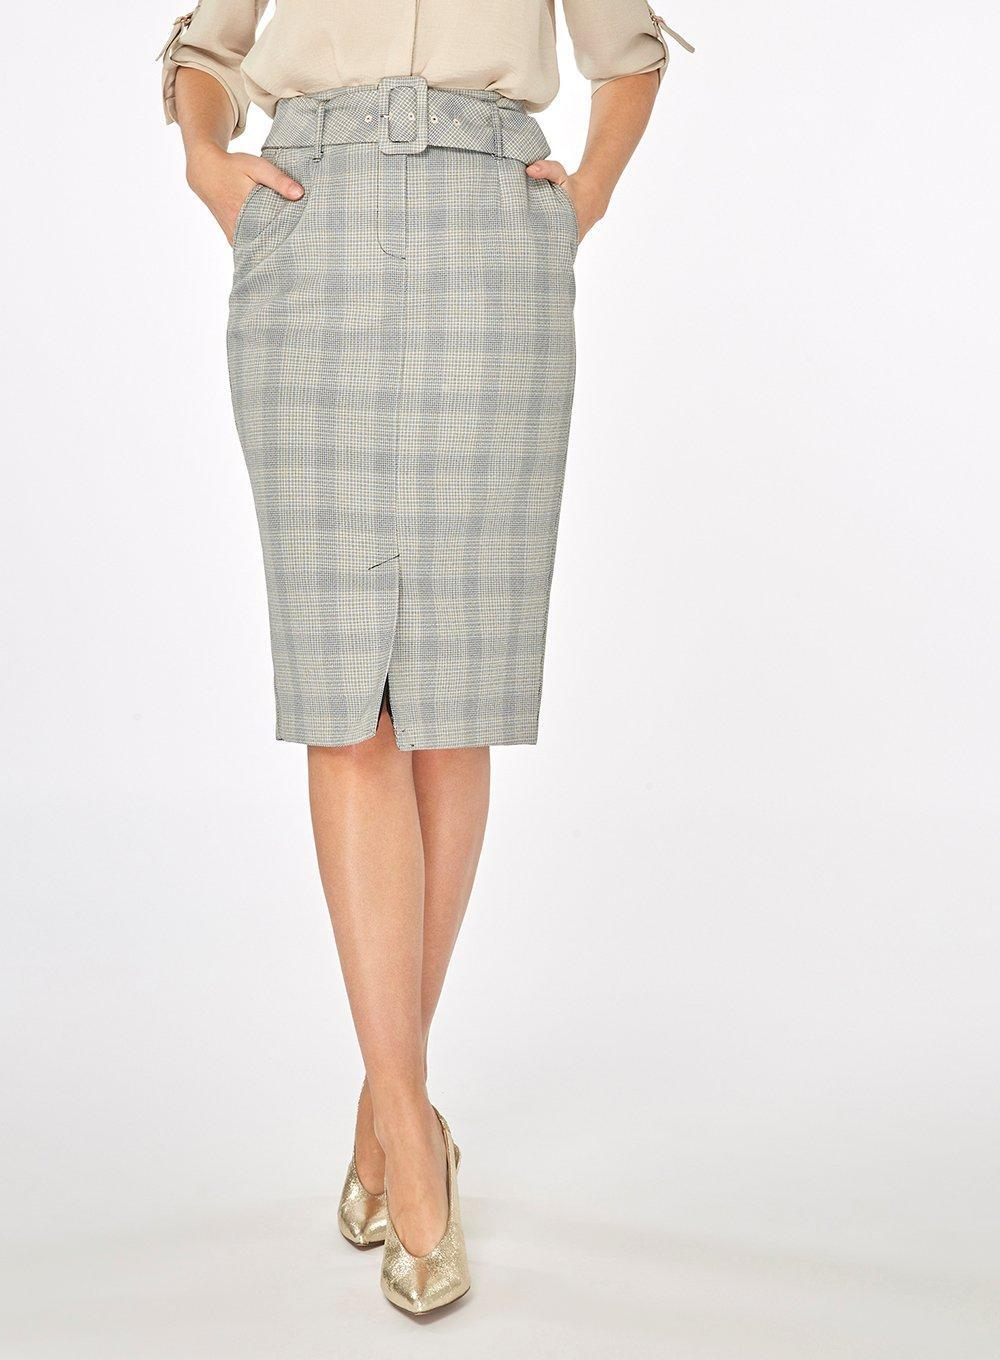 Dorothy Perkins Womens Multi Coloured Checked Belted Pencil Skirt- Classic mKAqV0f